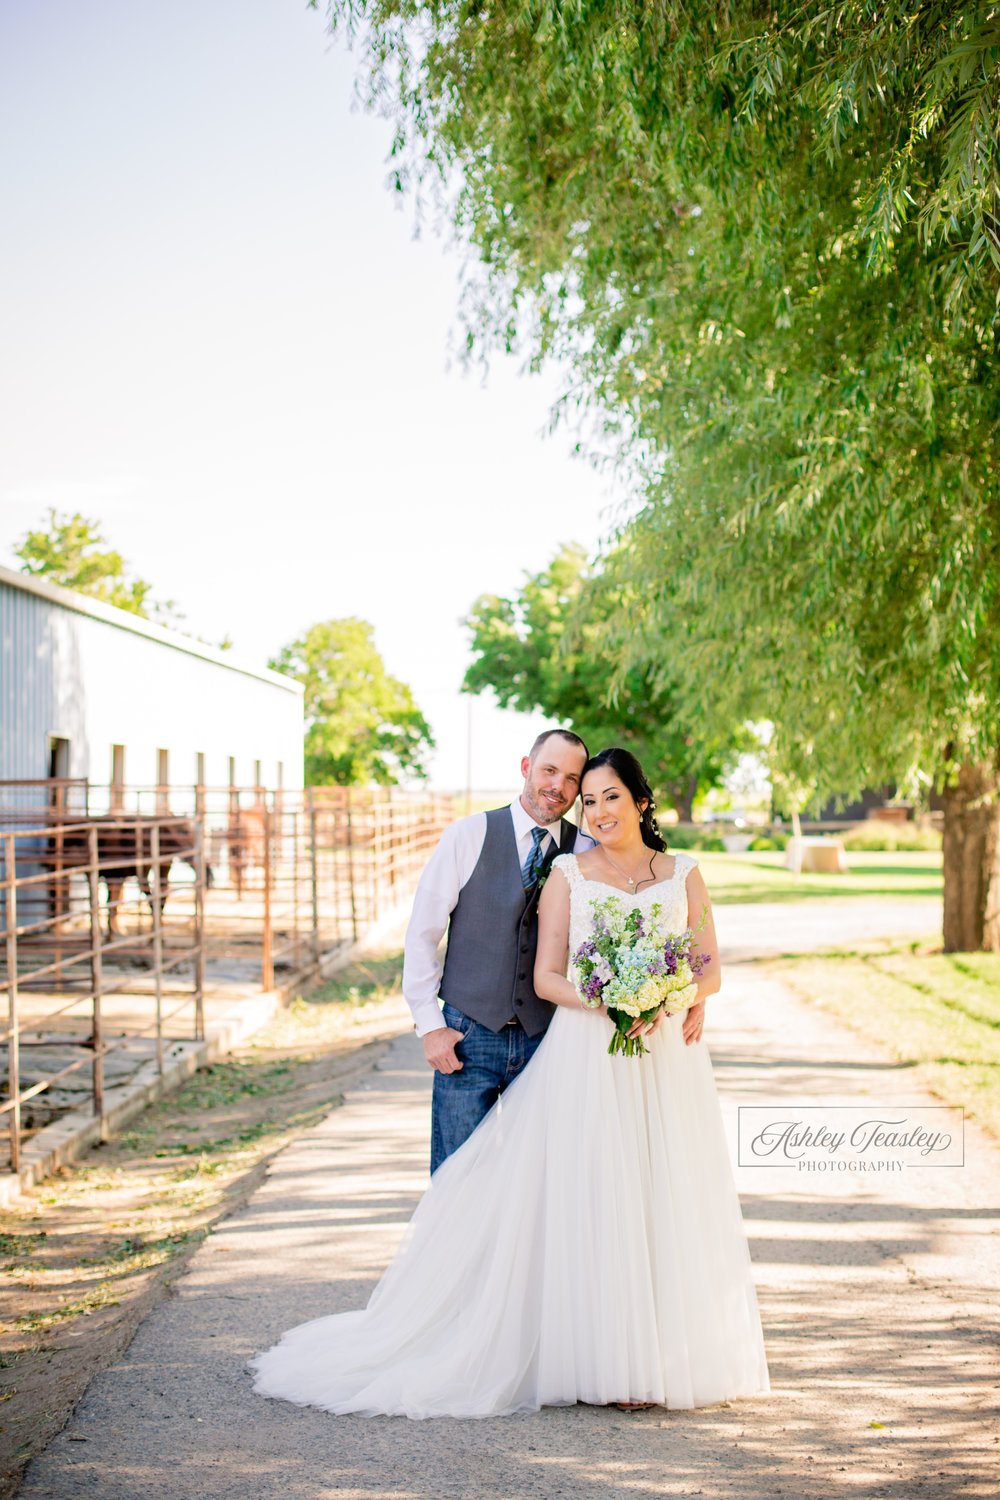 Jeanette & Rance - Butte Star Ranch - Sacramento Wedding Photographer - Ashley Teasley Photography (13 of 41).jpg